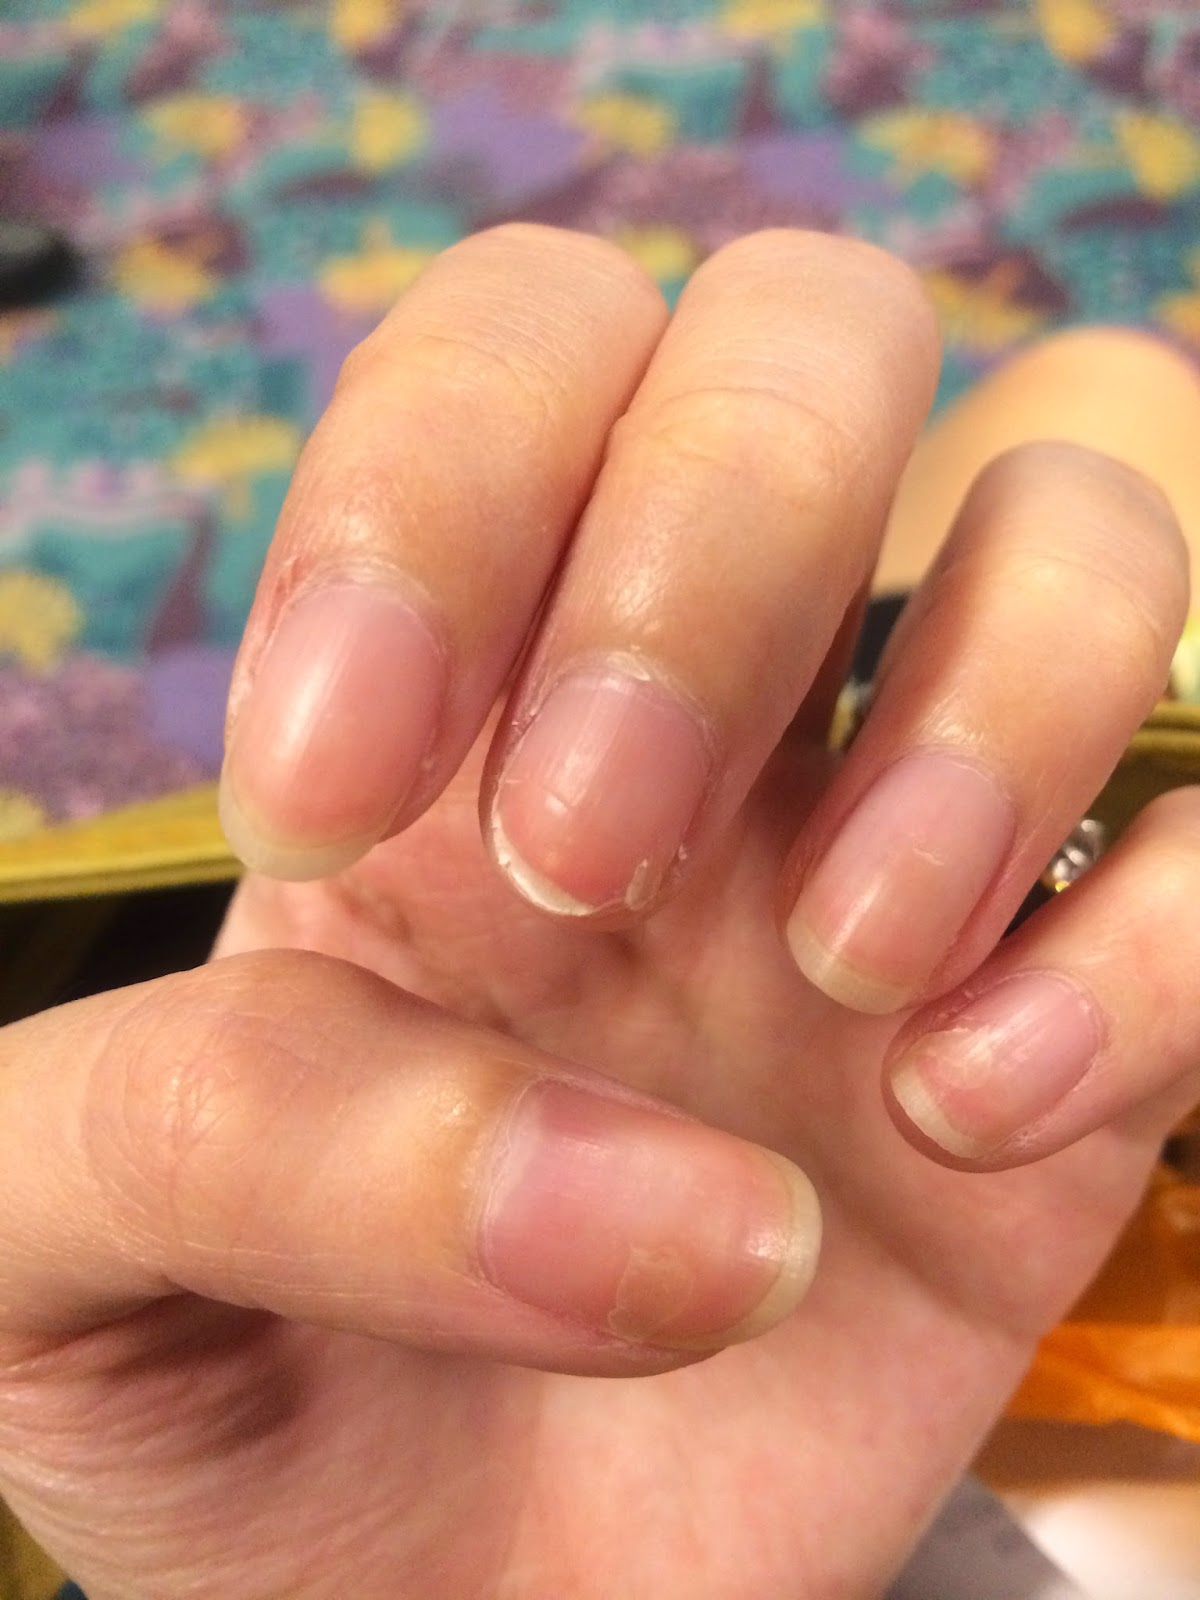 The Dettol Diaries: Peeling Fingernails after HFMD